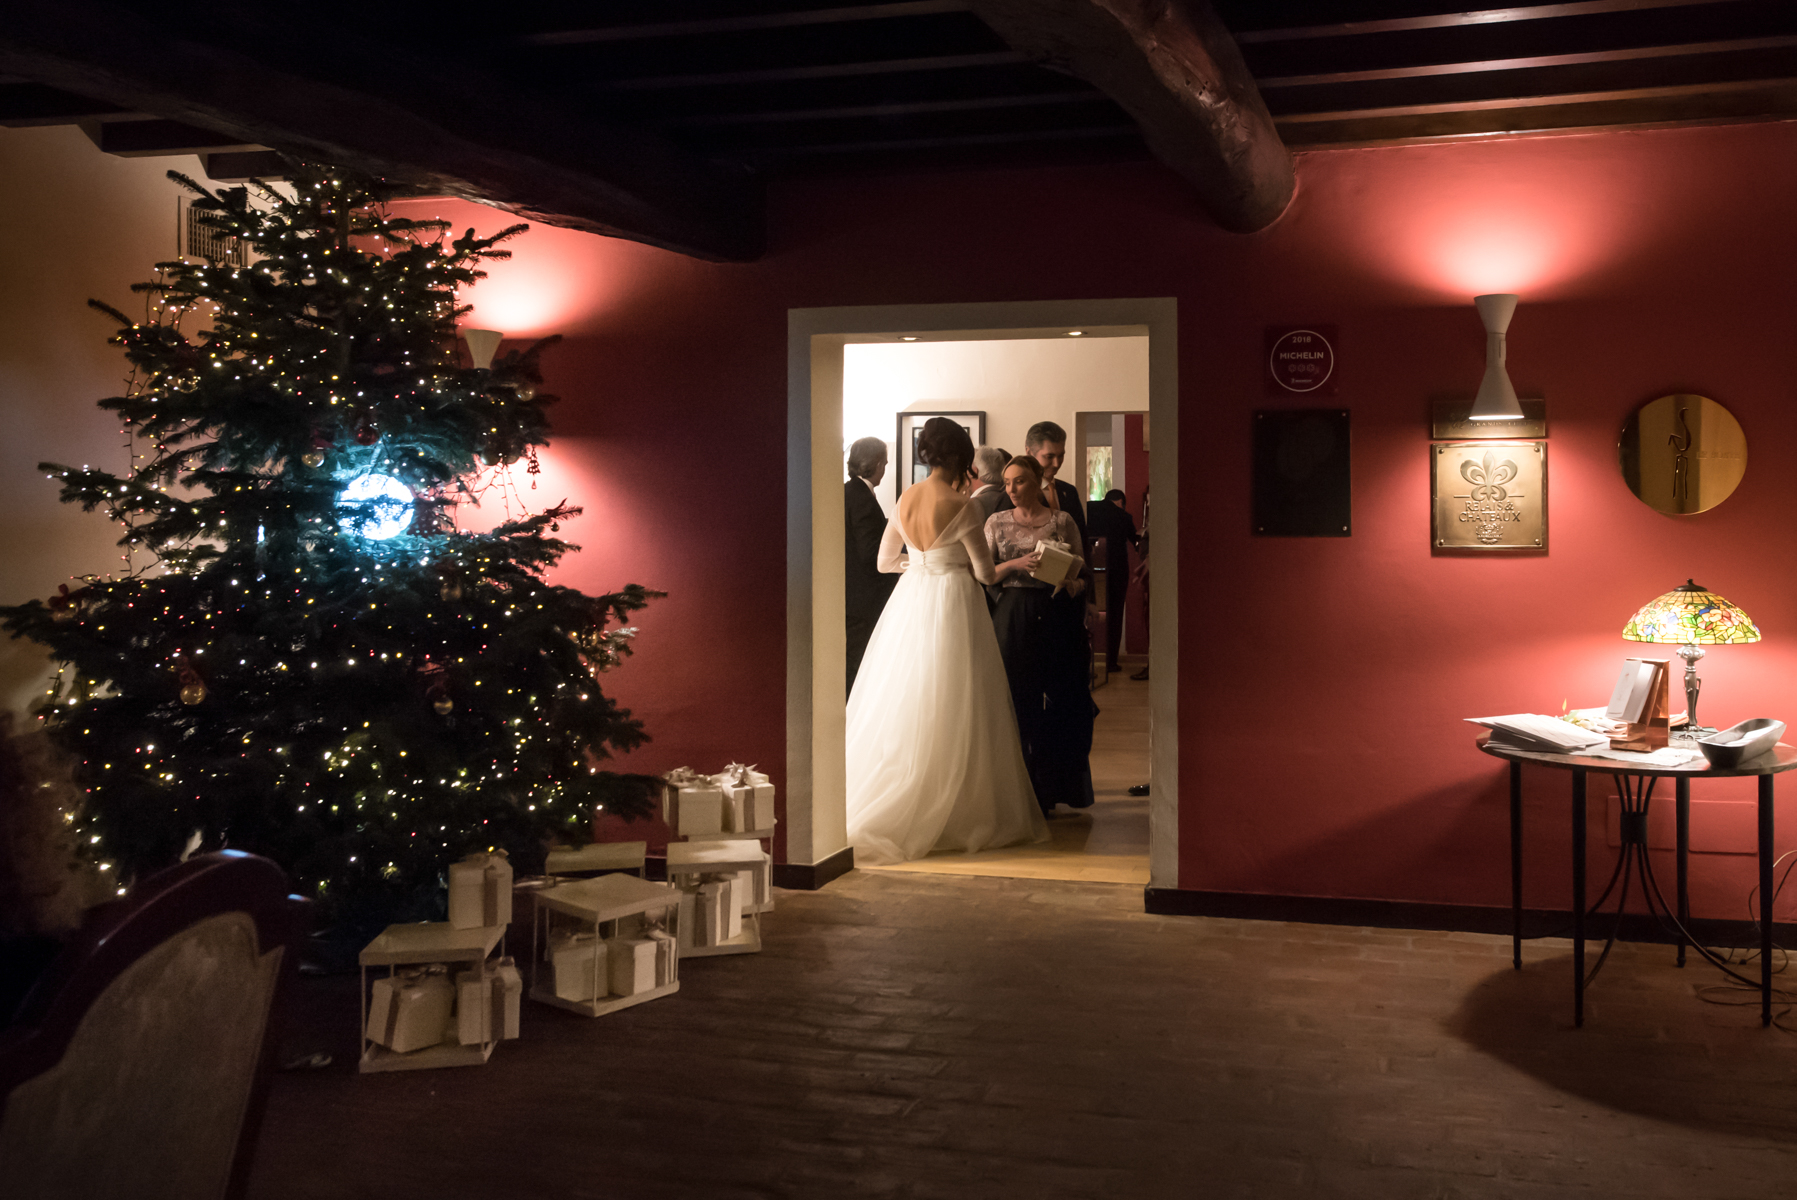 The Italy Wedding Venue of Dal Pescatore Restaurant - Mantua Photos | the bride dismisses the guests, paying homage to the wedding favor